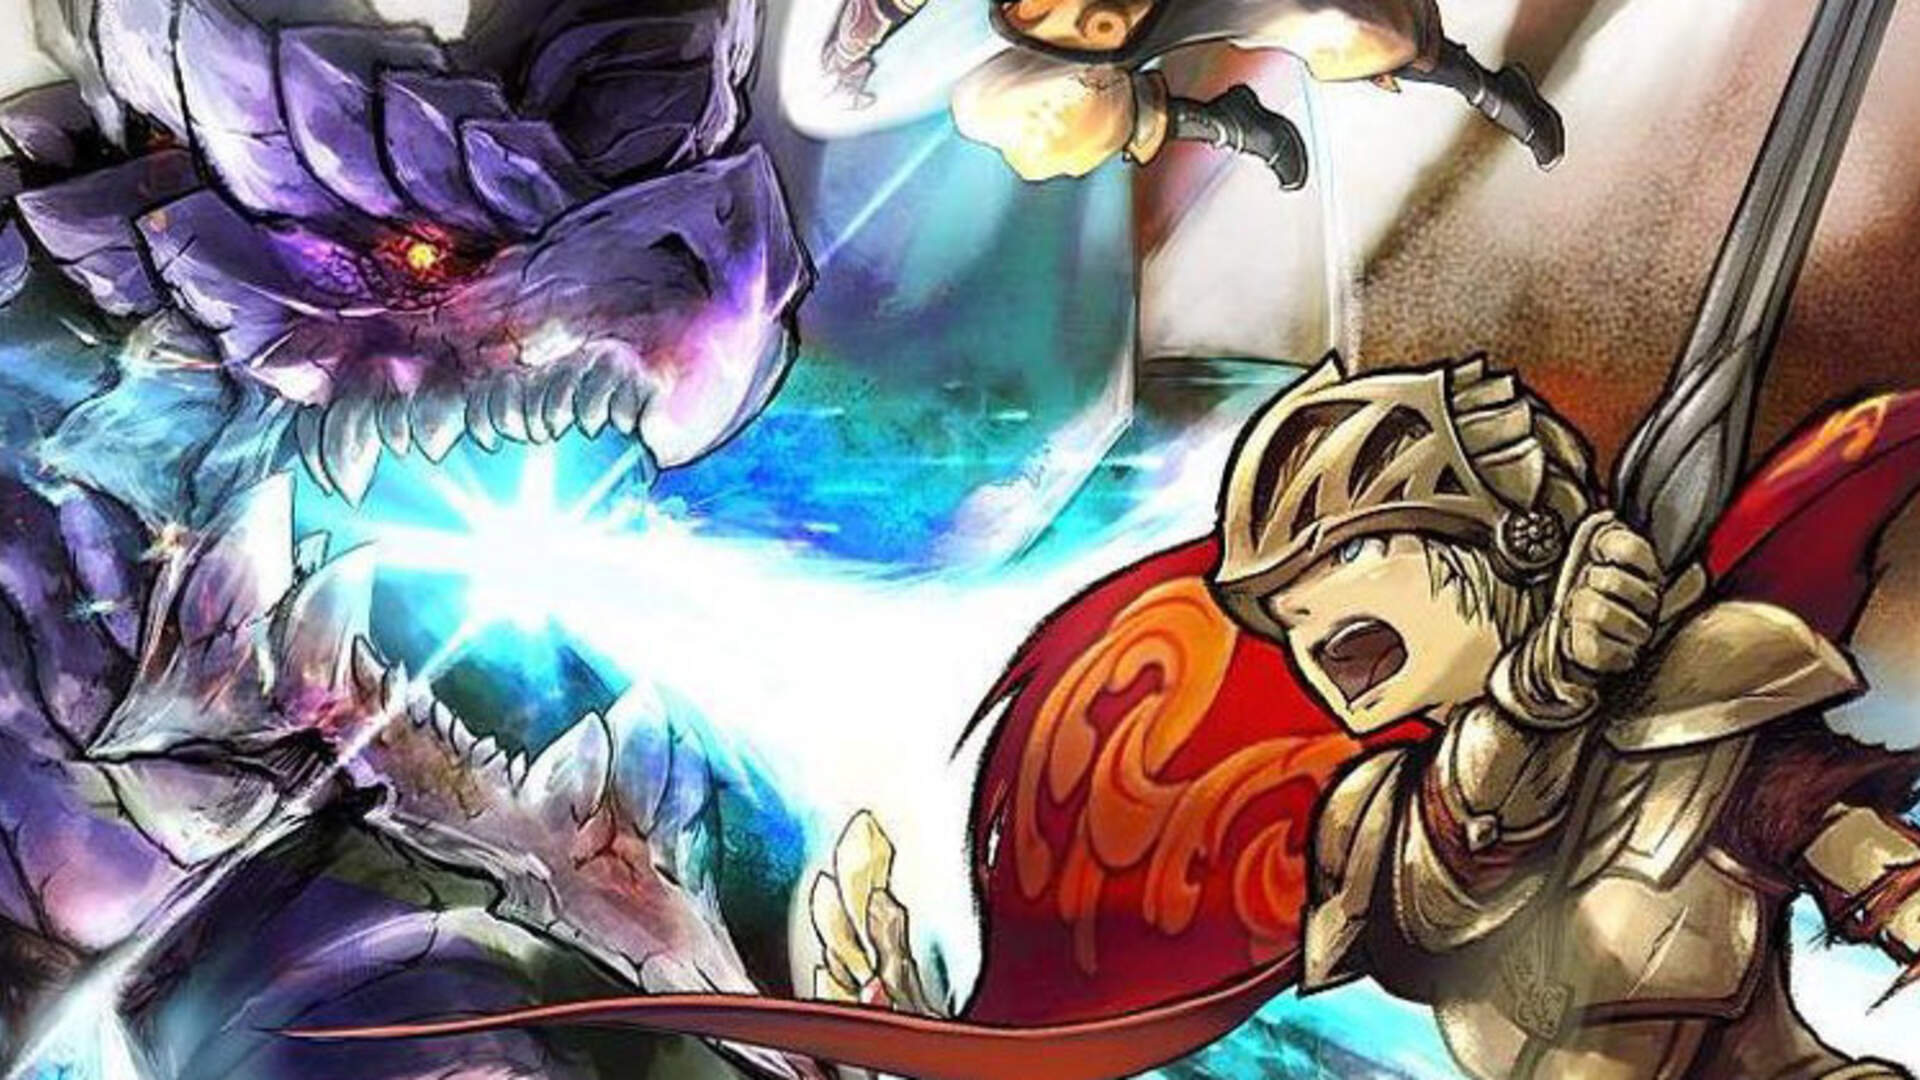 Can Final Fantasy Explorers Follow in Monster Hunter 4 Ultimate's Footsteps in the West?